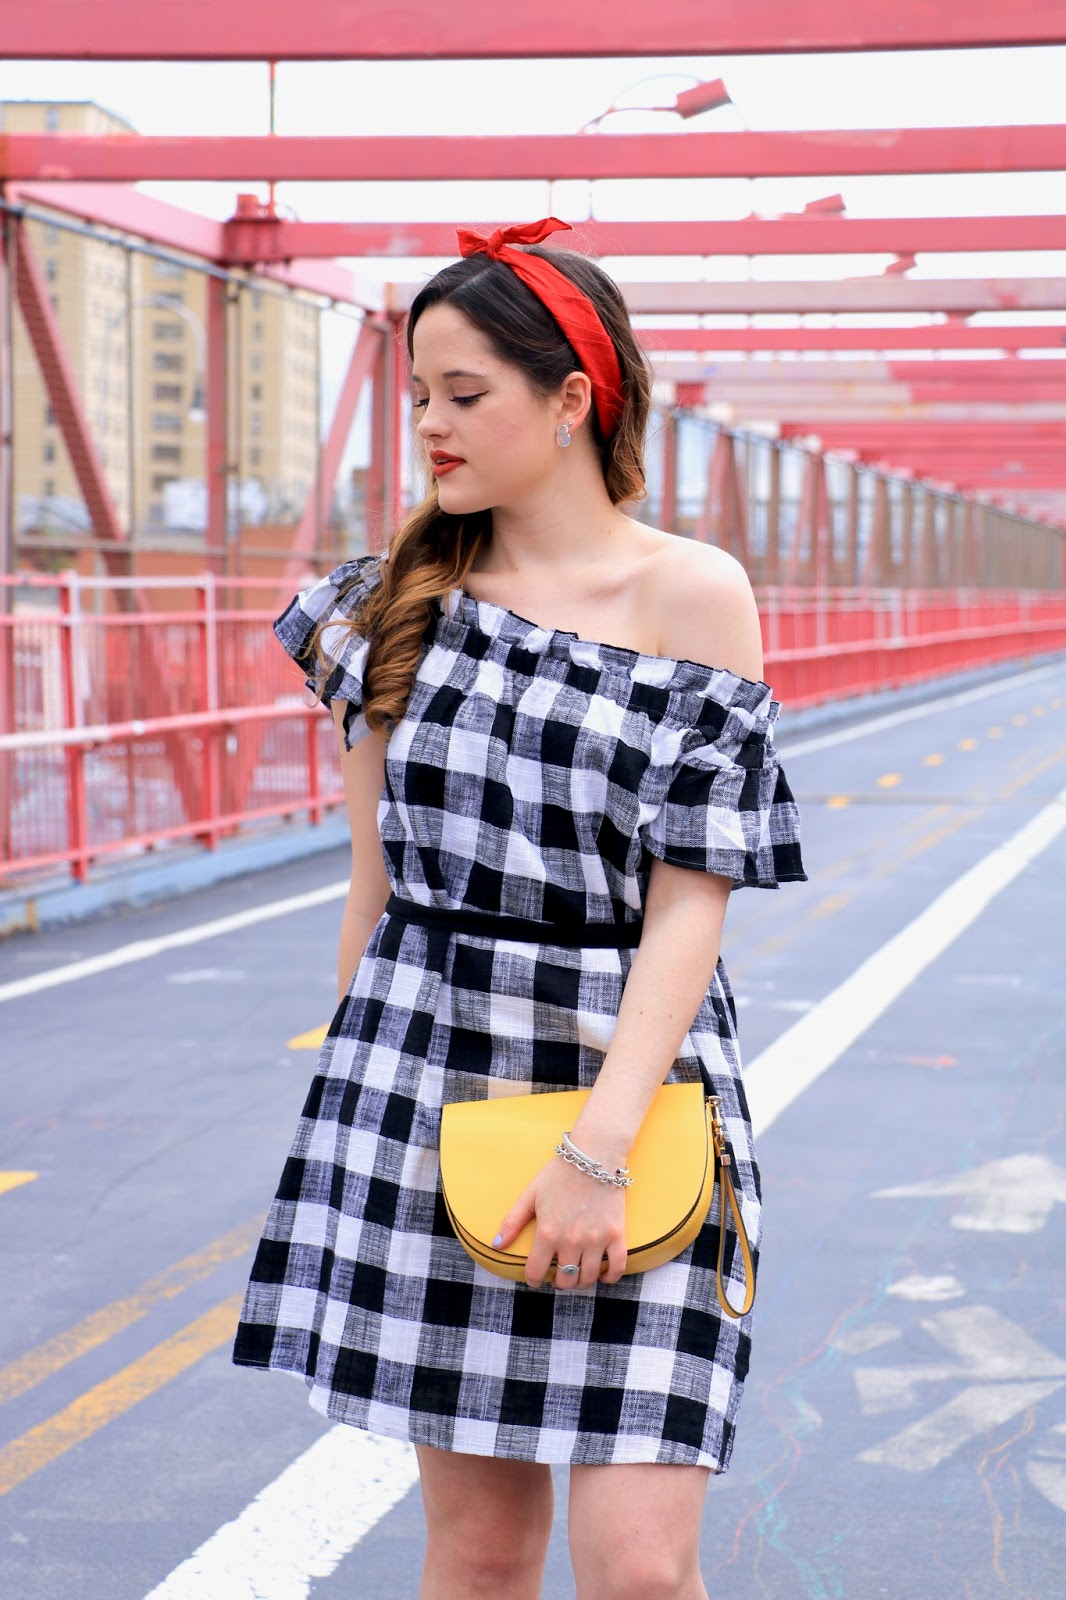 New York fashion blogger Kathleen Harper on the Williamsburg Bridge in gingham dress